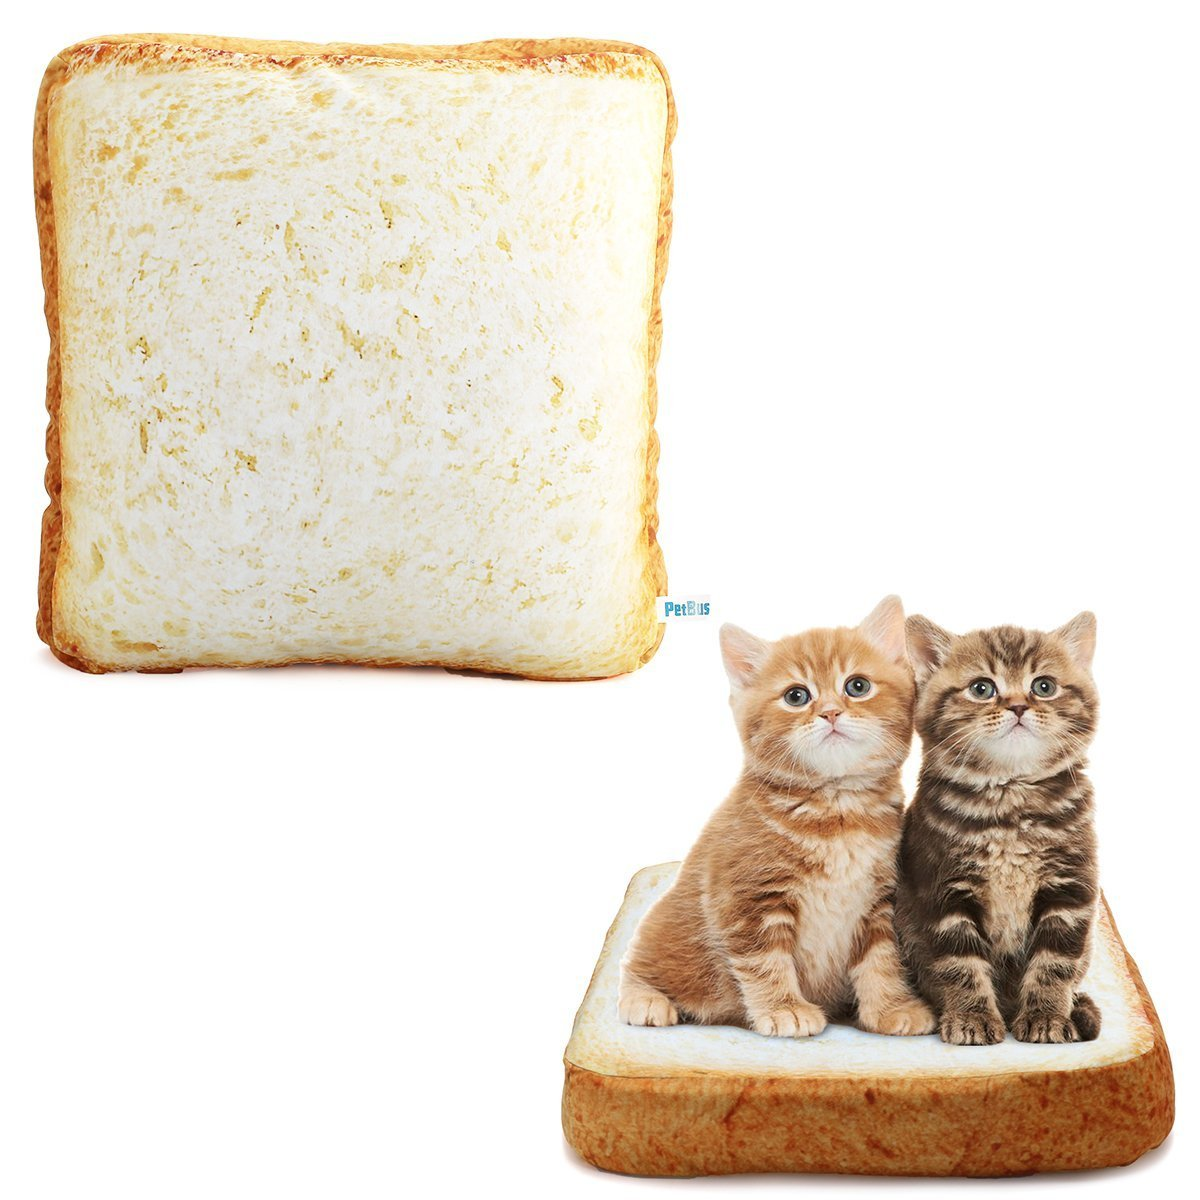 Petbus Cat Dog Bed Mat Pet Mattress Pad Creative Toast Bread Foam Cushion for Cute Animal Catty and Doggy Sleeping Playing Resting (Down)